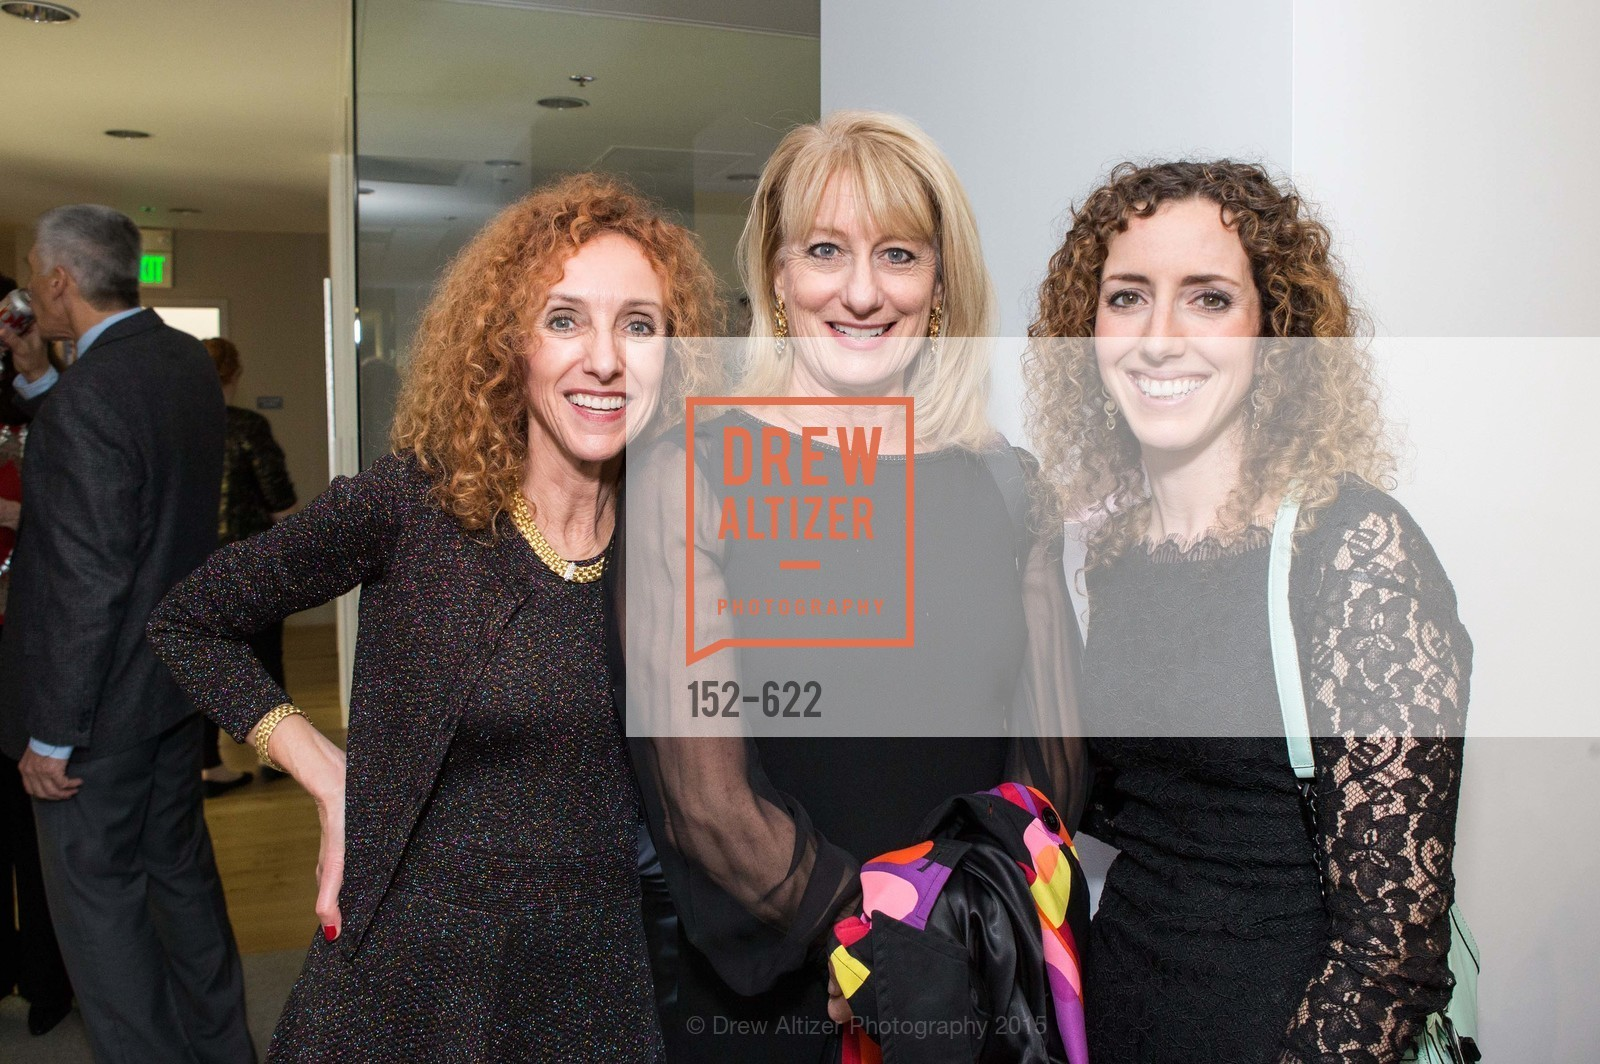 Nina Hatvany, Patty Lawton, Natalie Kitchen, Pacific Union's Club 1699, Pacific Union. 1699 Van Ness Ave, December 3rd, 2015,Drew Altizer, Drew Altizer Photography, full-service agency, private events, San Francisco photographer, photographer california